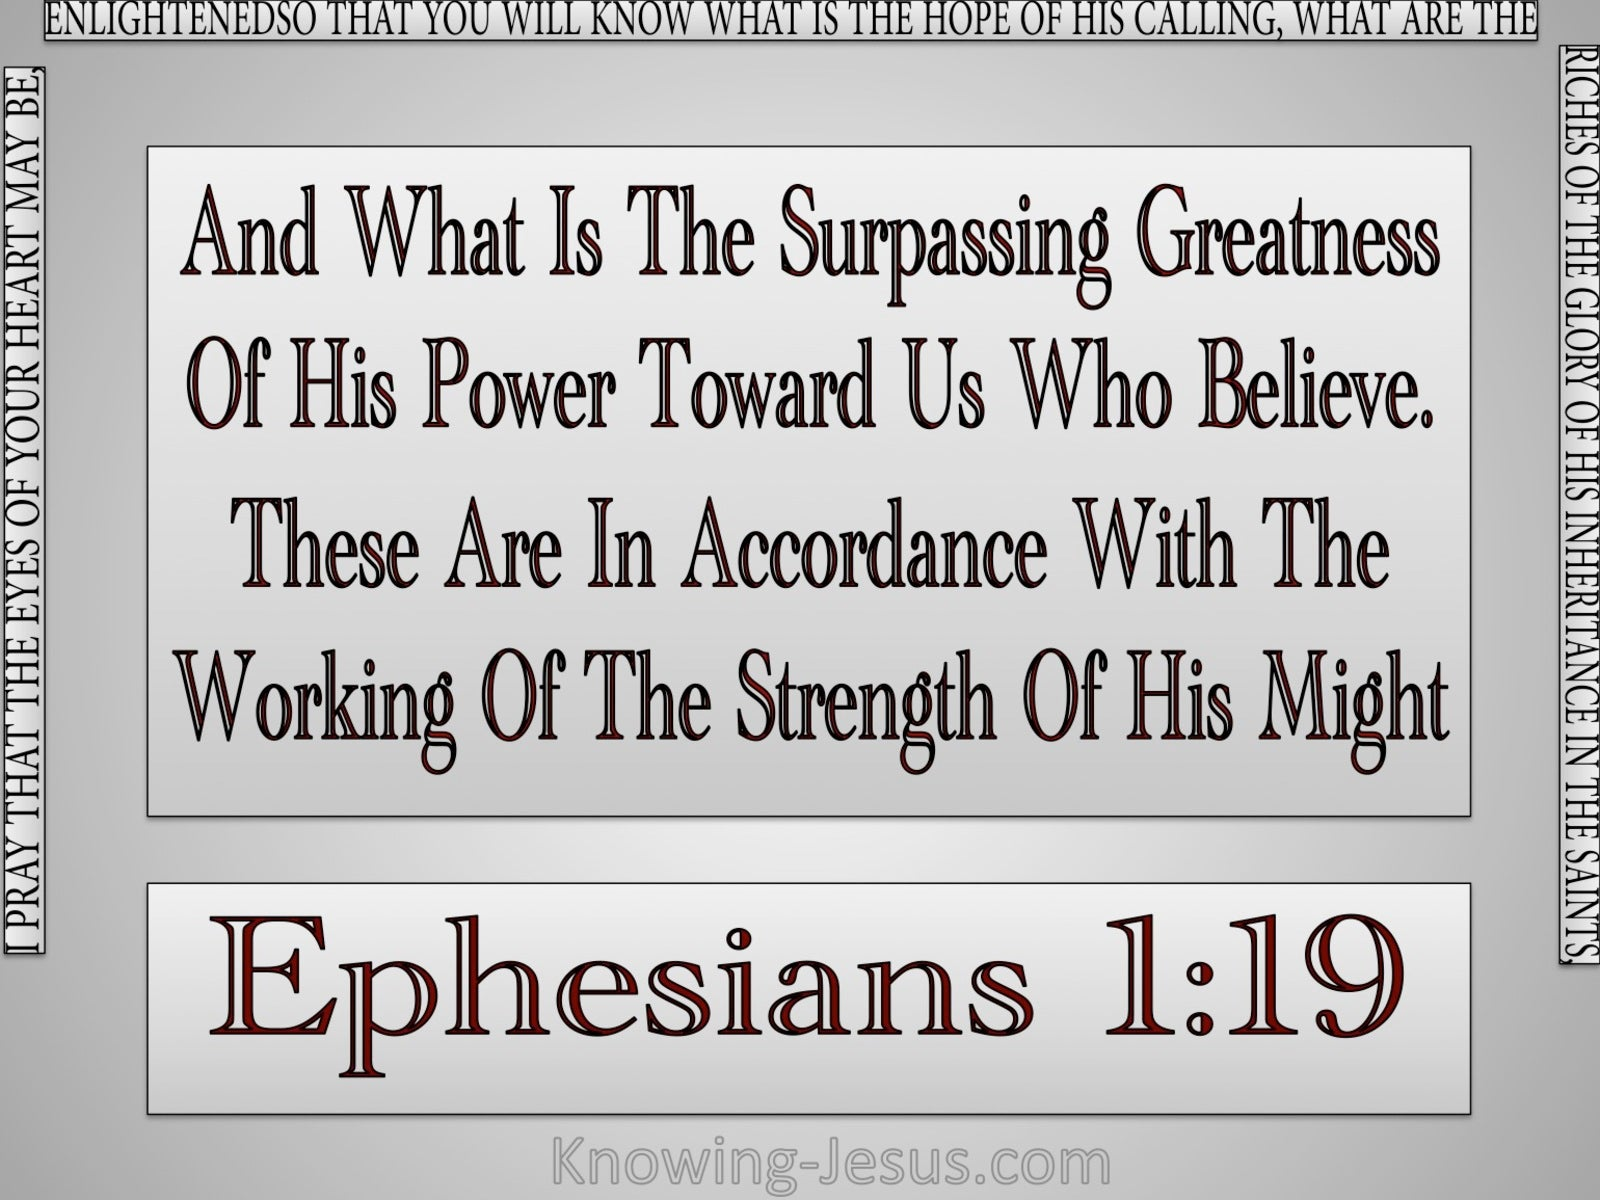 Ephesians 1:19 The Surpassing Greatness Of His Power (gray)